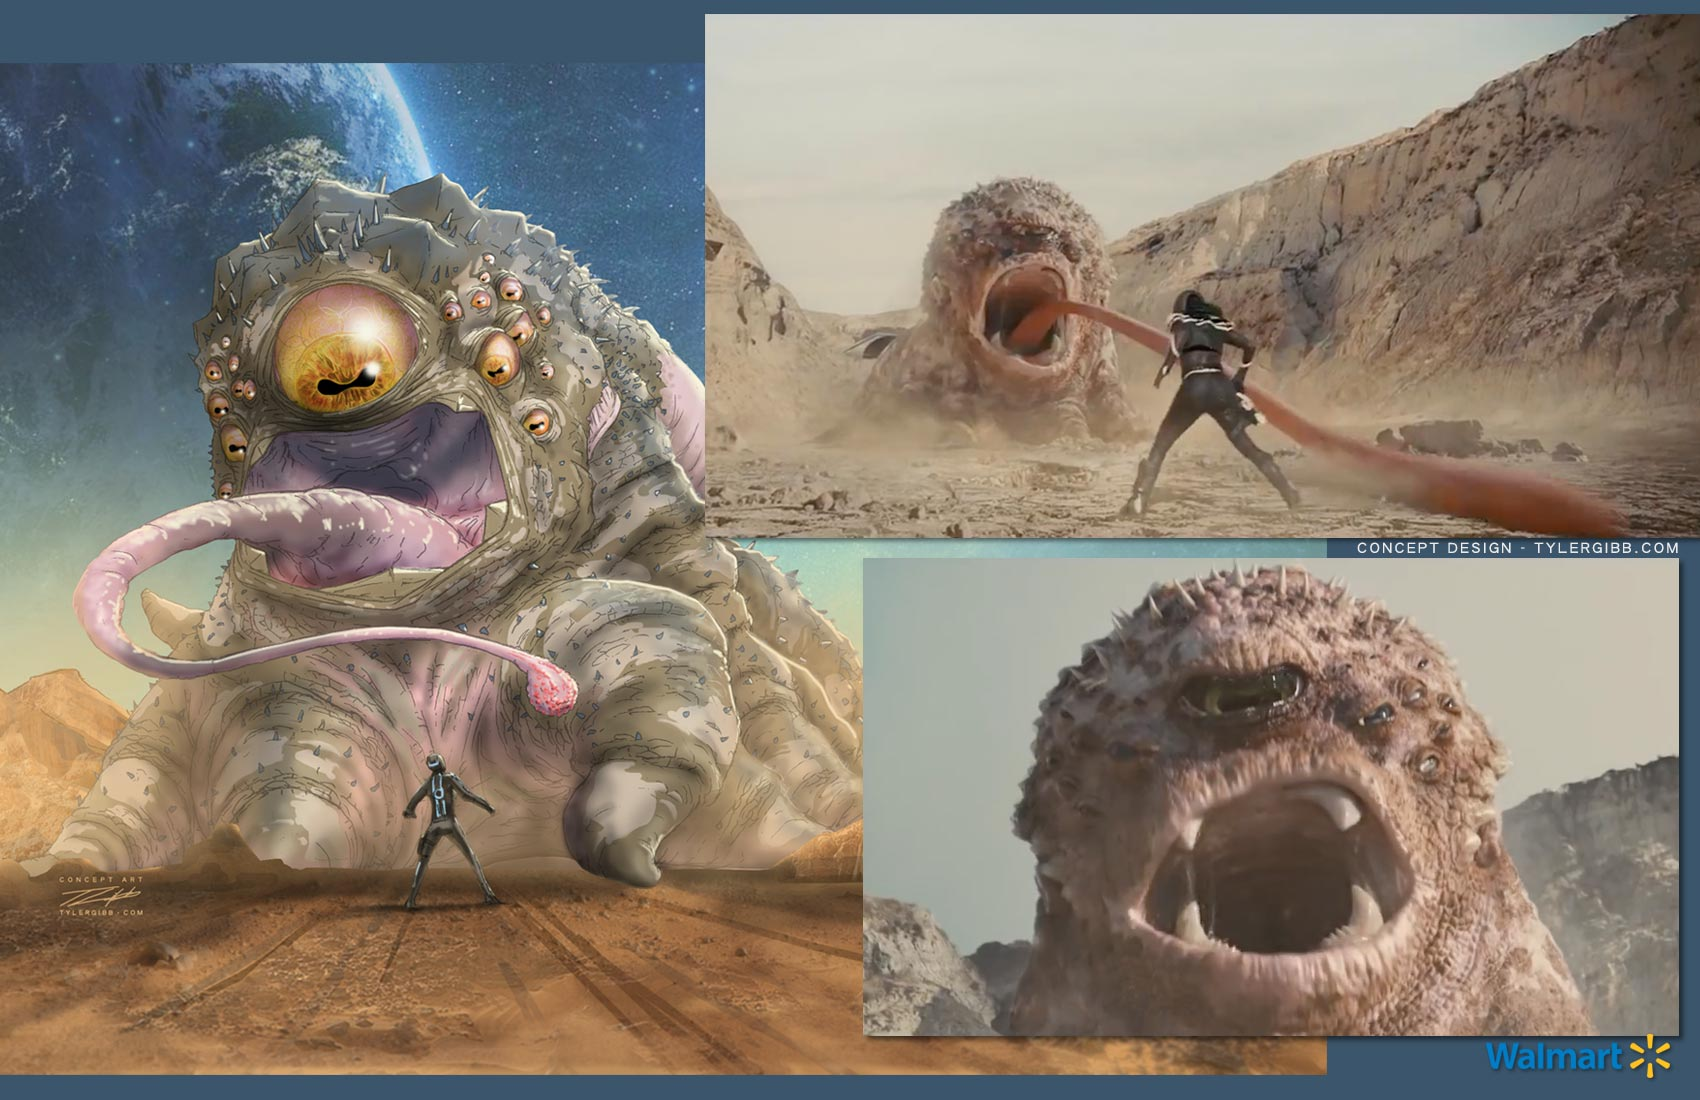 Tyler Gibb - Previs Storyboards Concept Design and Concept